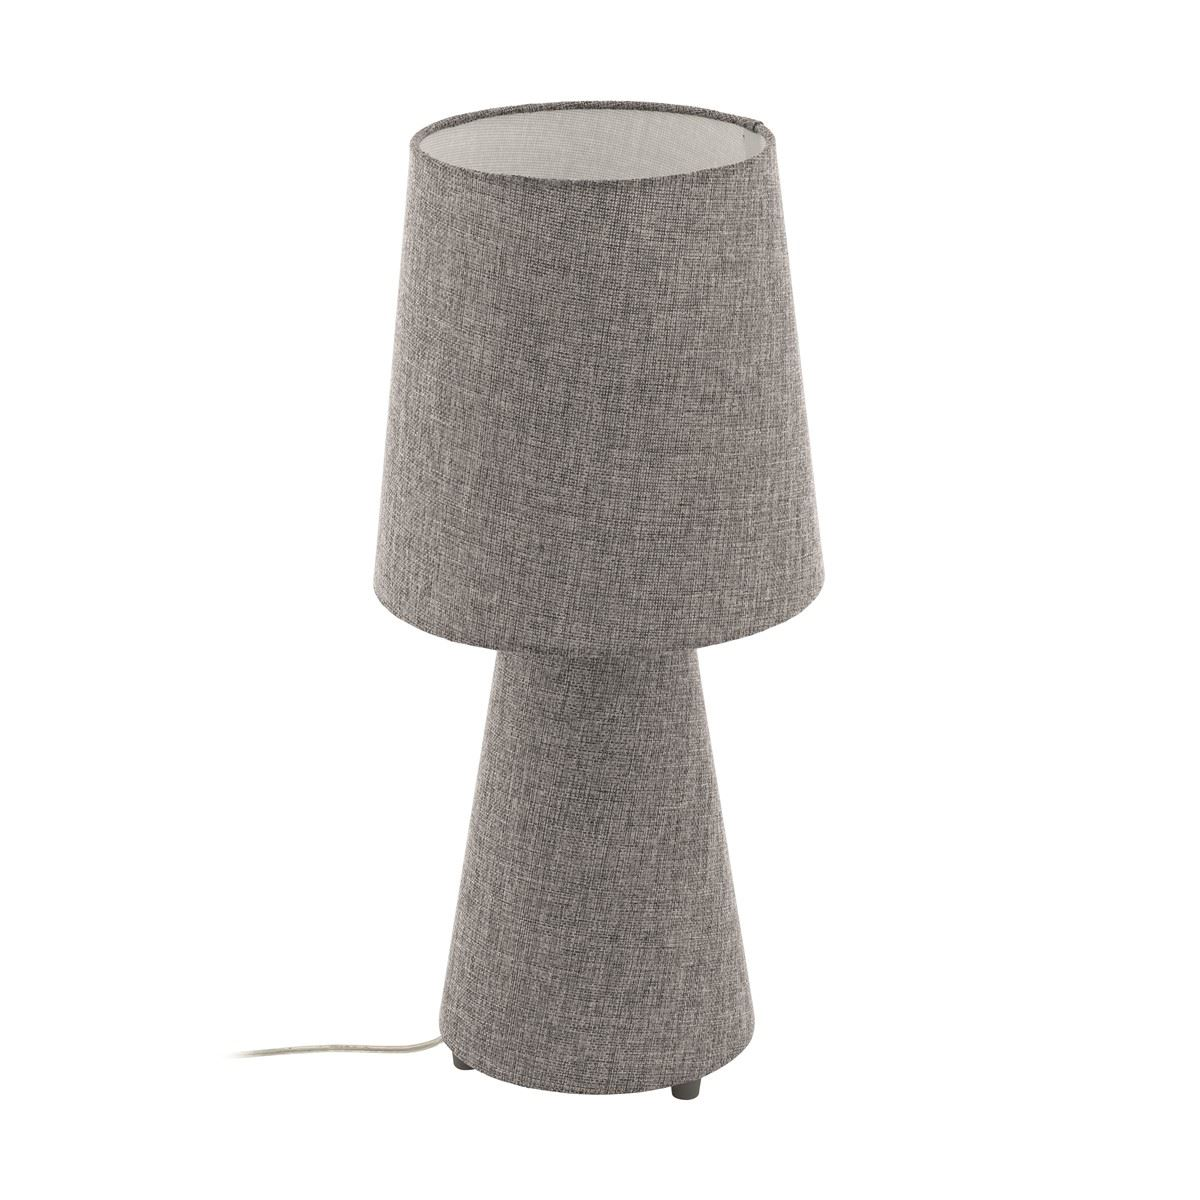 Modern Style Linen Bedside Fabric Table Lamp With Grey Shade